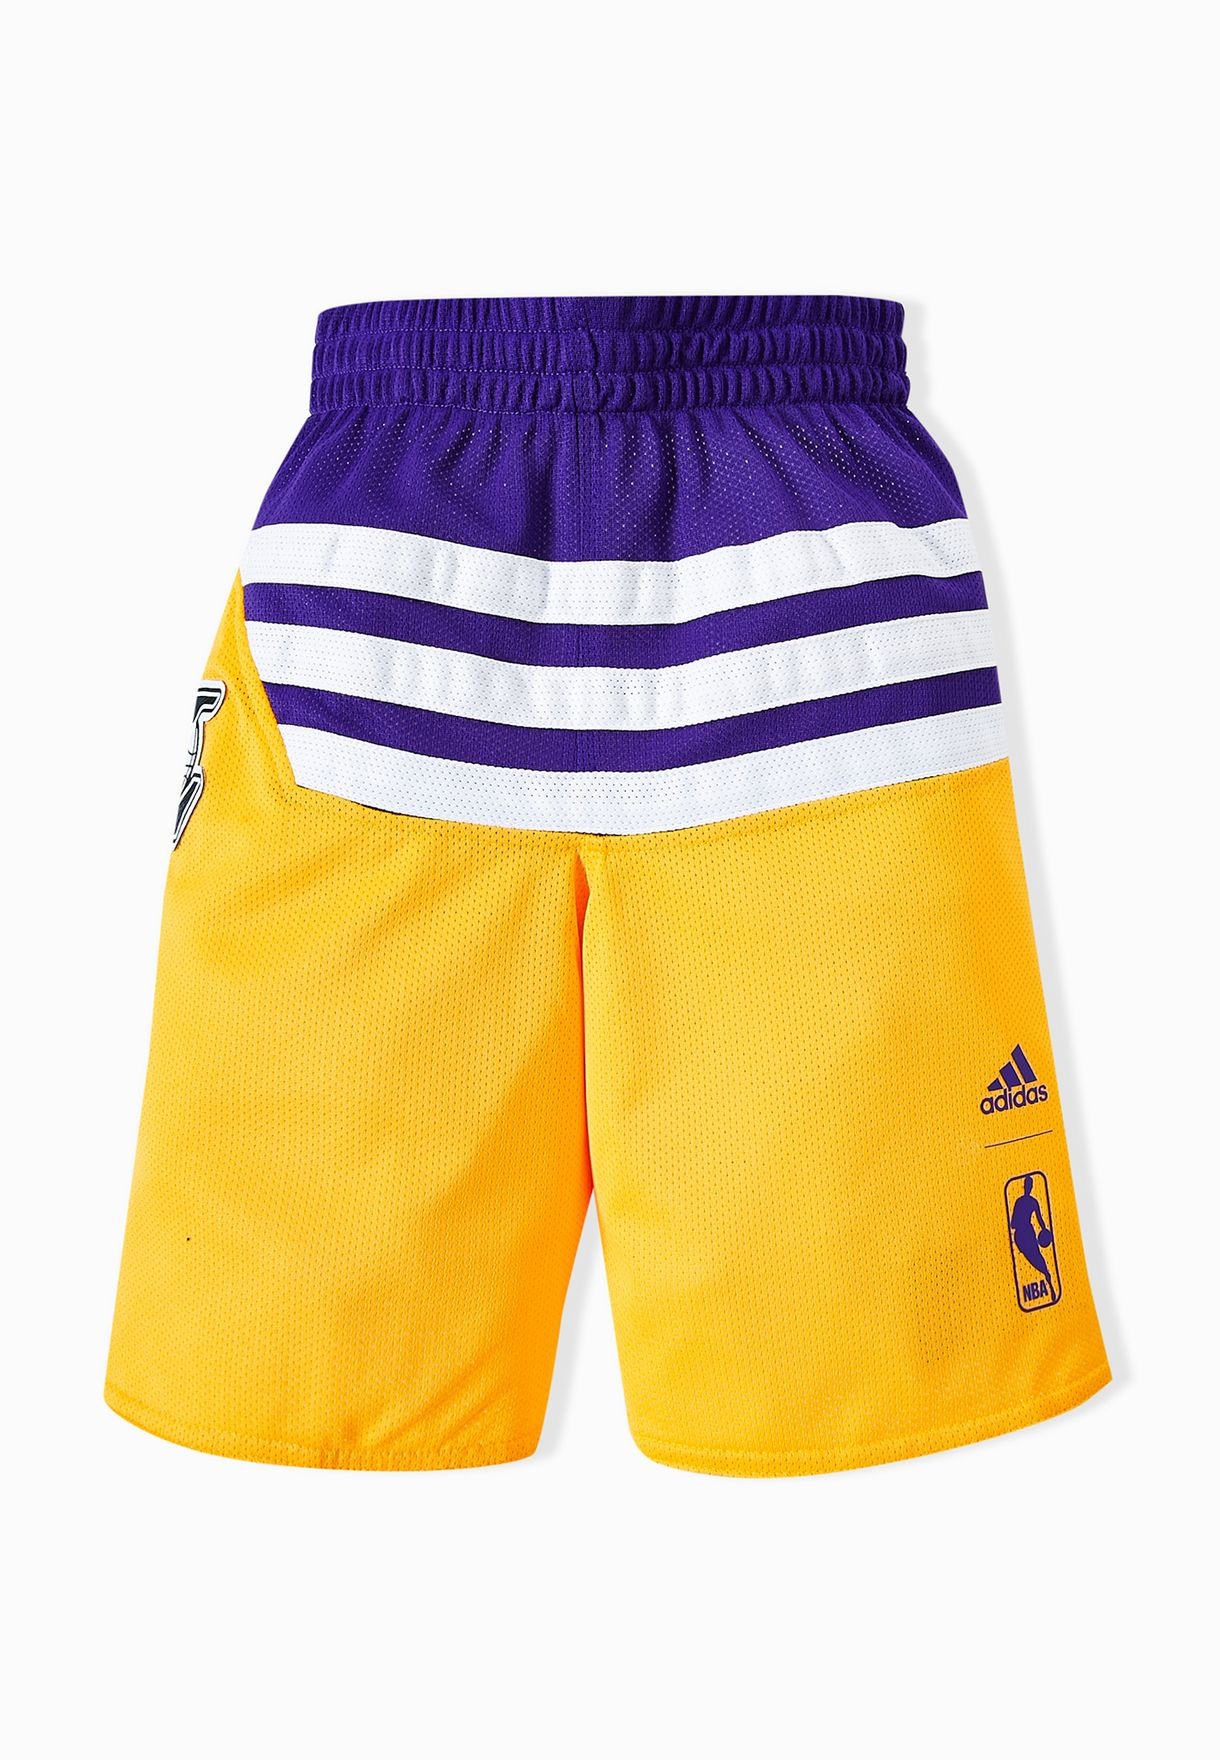 5ccc92cd Shop adidas multicolor Youth Reversible LA Lakers Shorts AJ1989 for ...